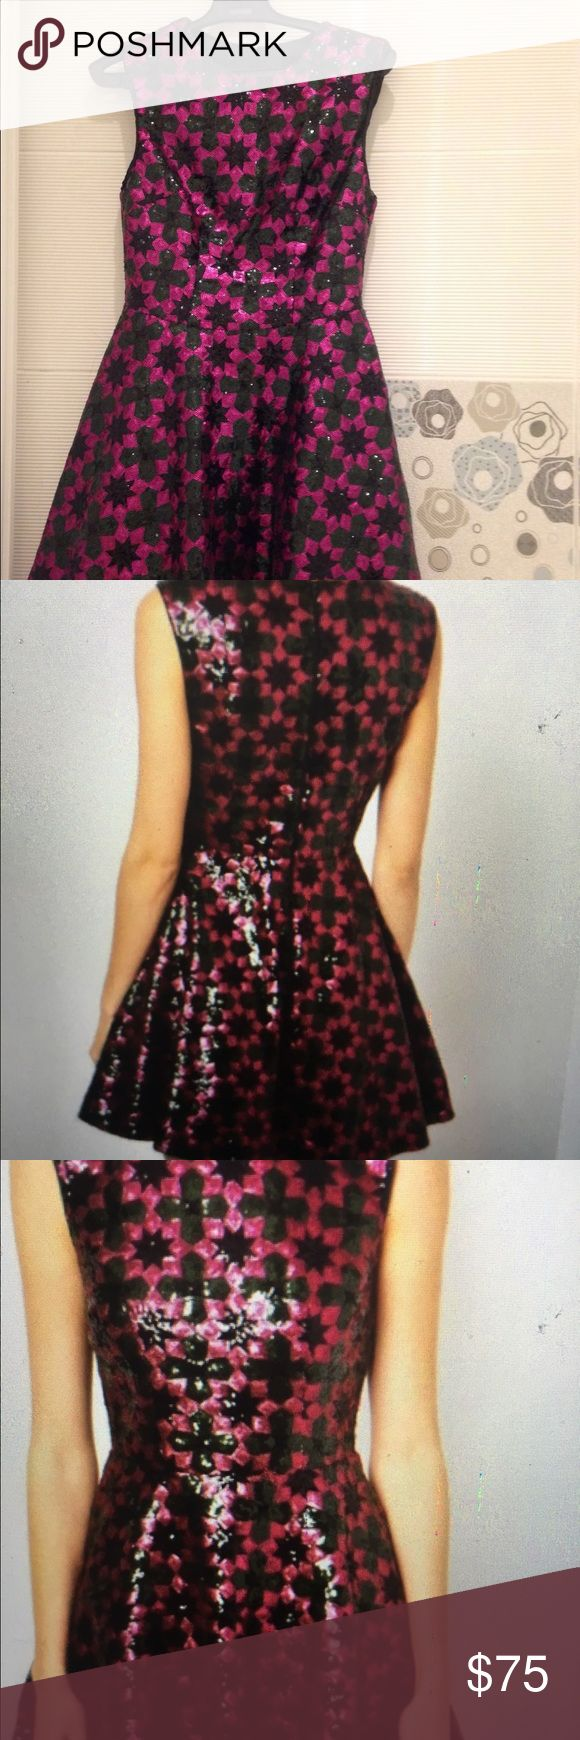 ASOS sequin dress Brand new sequin dress fit and flare with beautiful geometric pattern with fuschia and dark green colors ASOS Dresses Mini